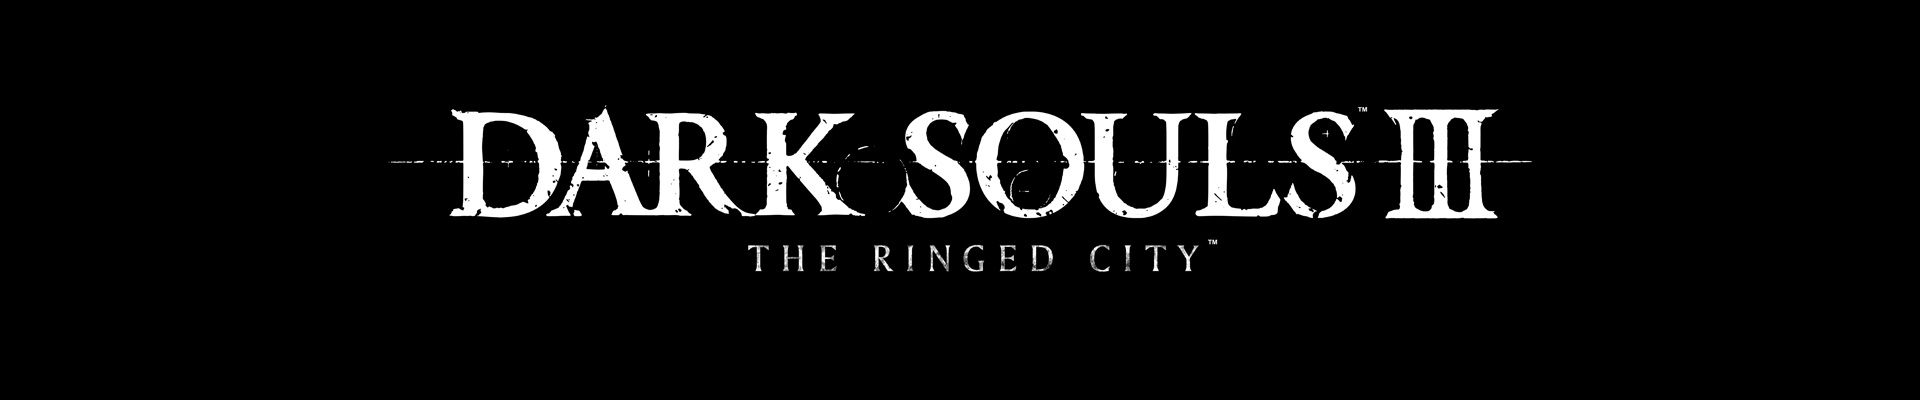 Thoughts on: Dark Souls III: The Ringed City